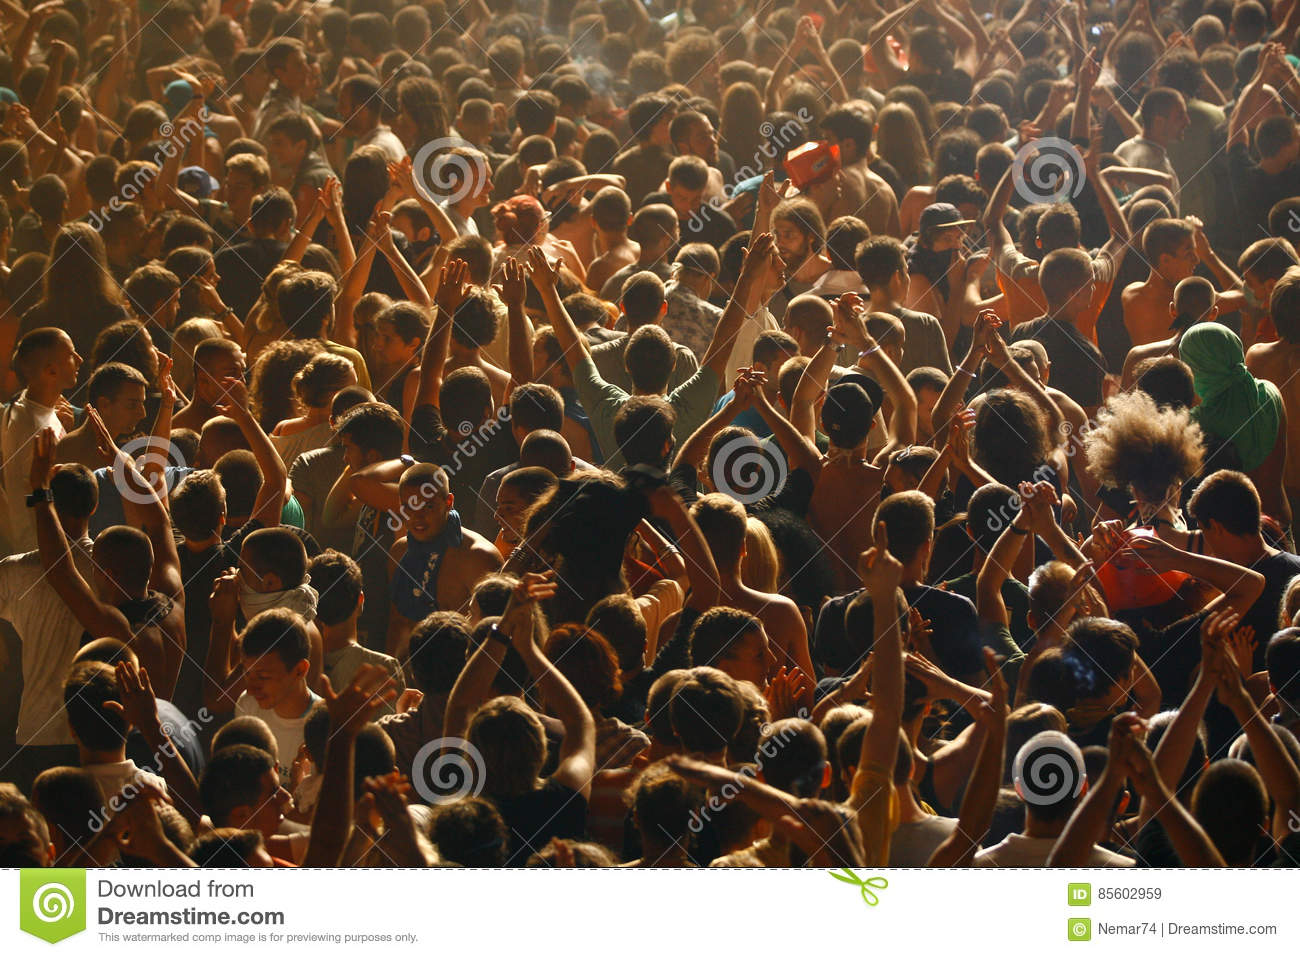 Crowd from the bird`s perspective